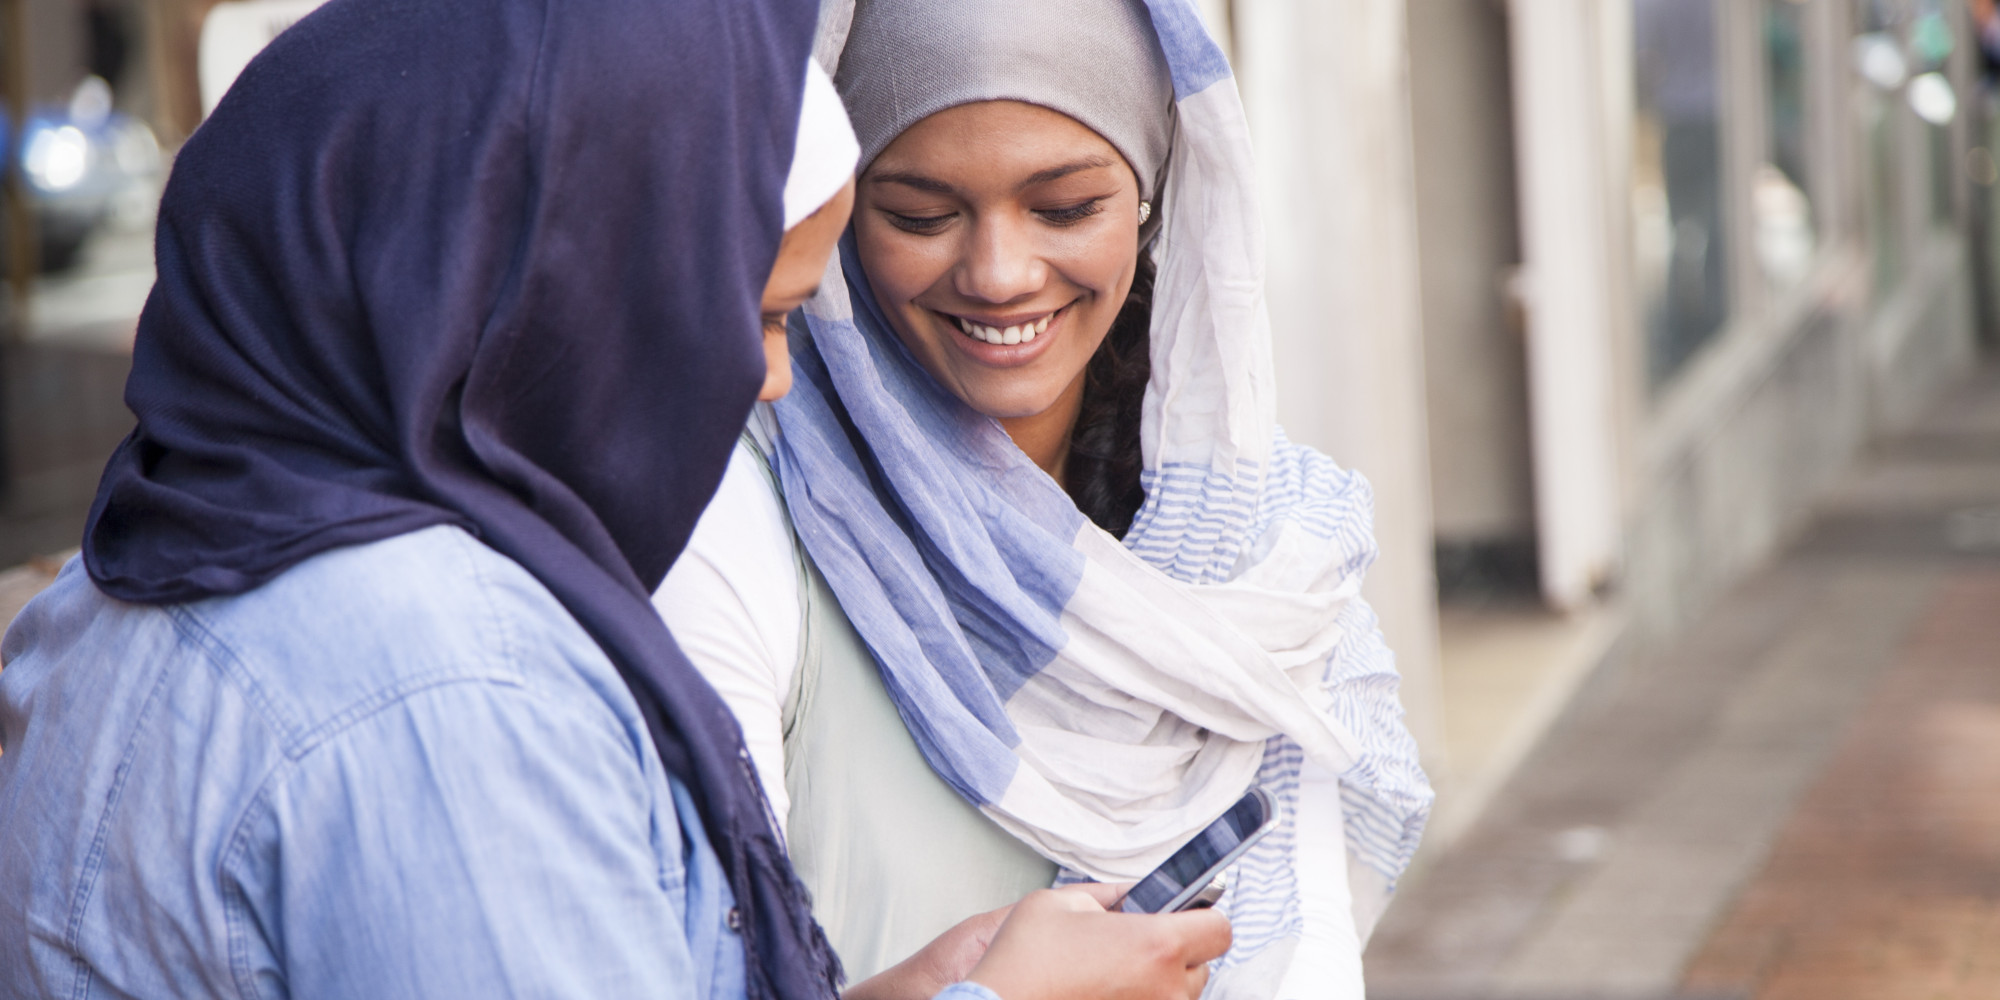 westbury muslim girl personals Discover how easy it is to find women seeking dates in westbury with mingle2's free westbury dating  quiet and kind girl who  westbury muslim singles.